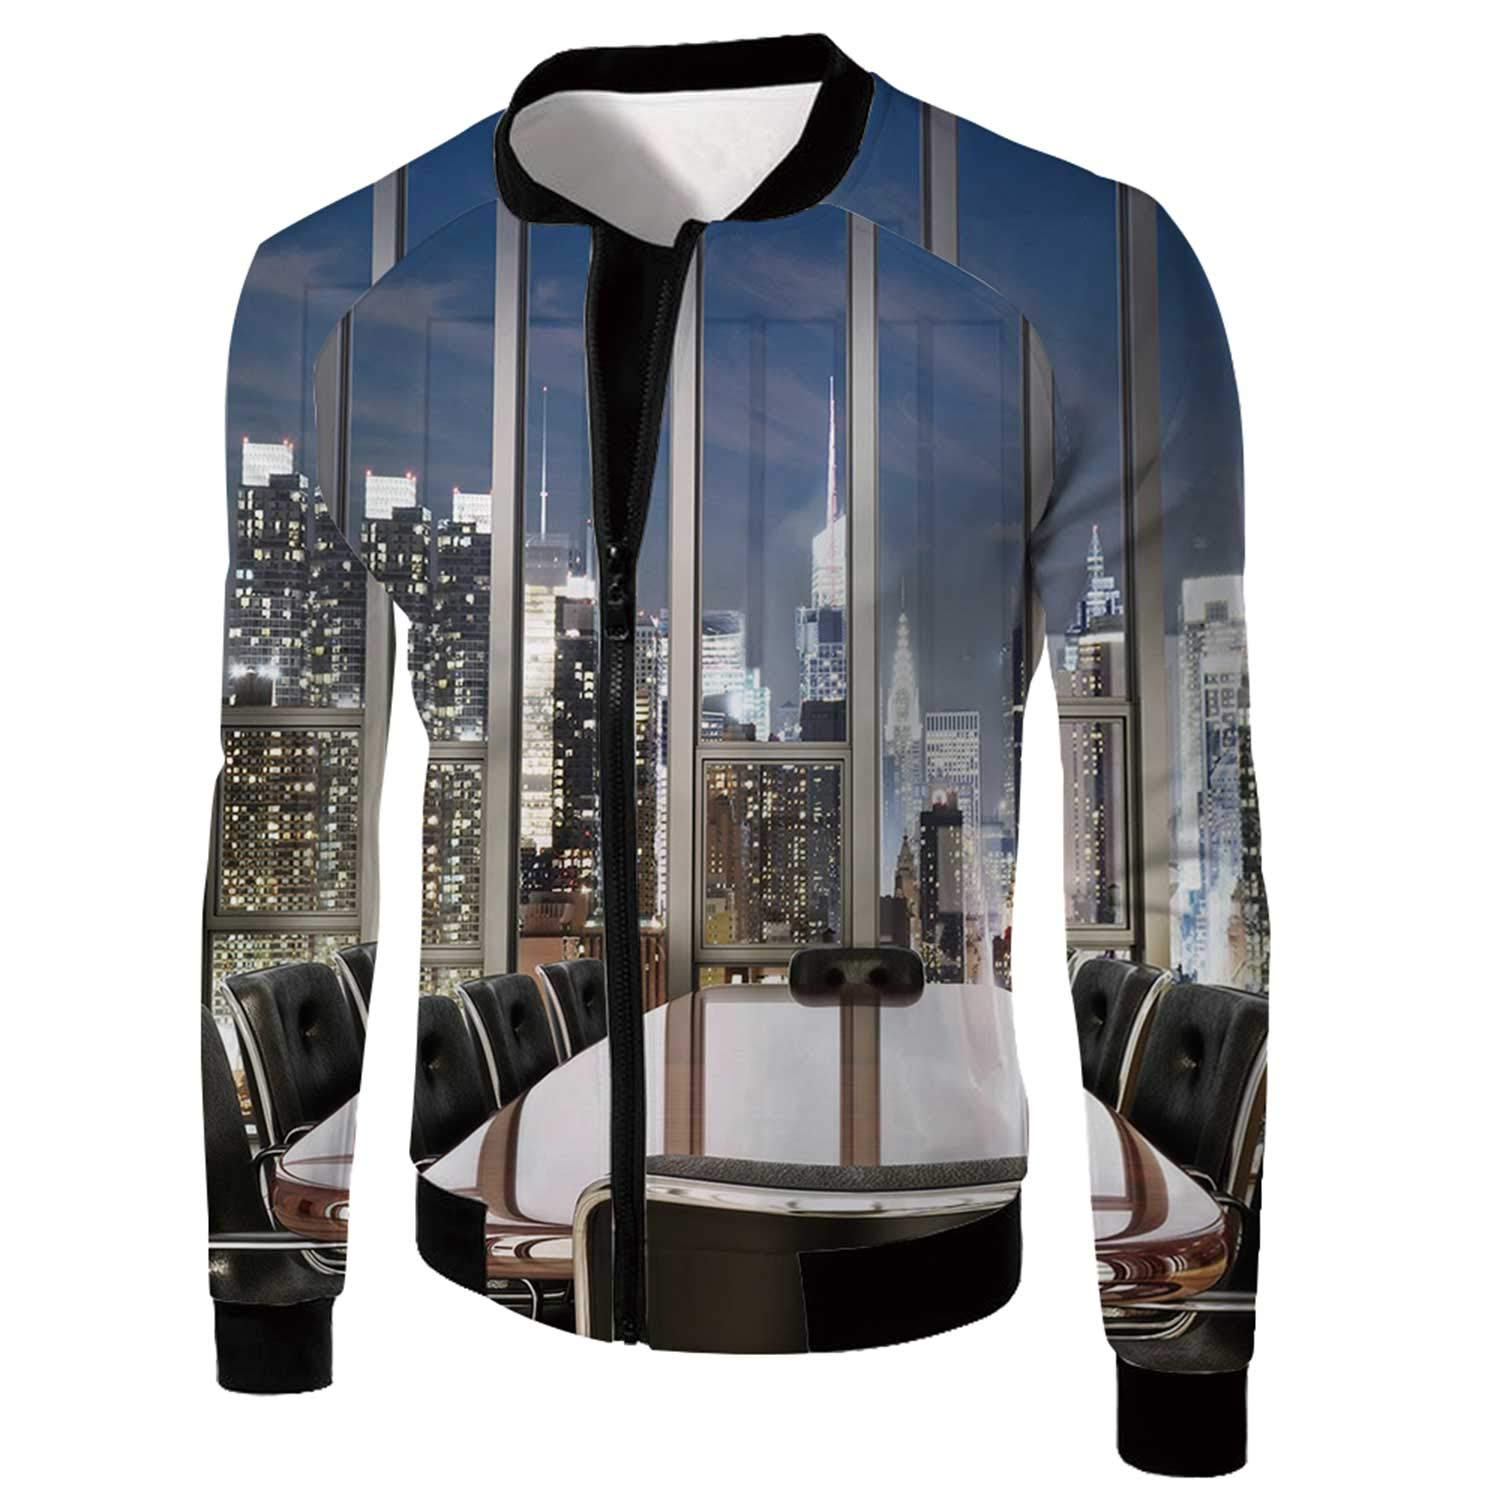 Modern Decor Classical Jacket,Business Office Conference Room Table Chairs City View at Dusk Realistic for Sports,3XL by MOOCOM